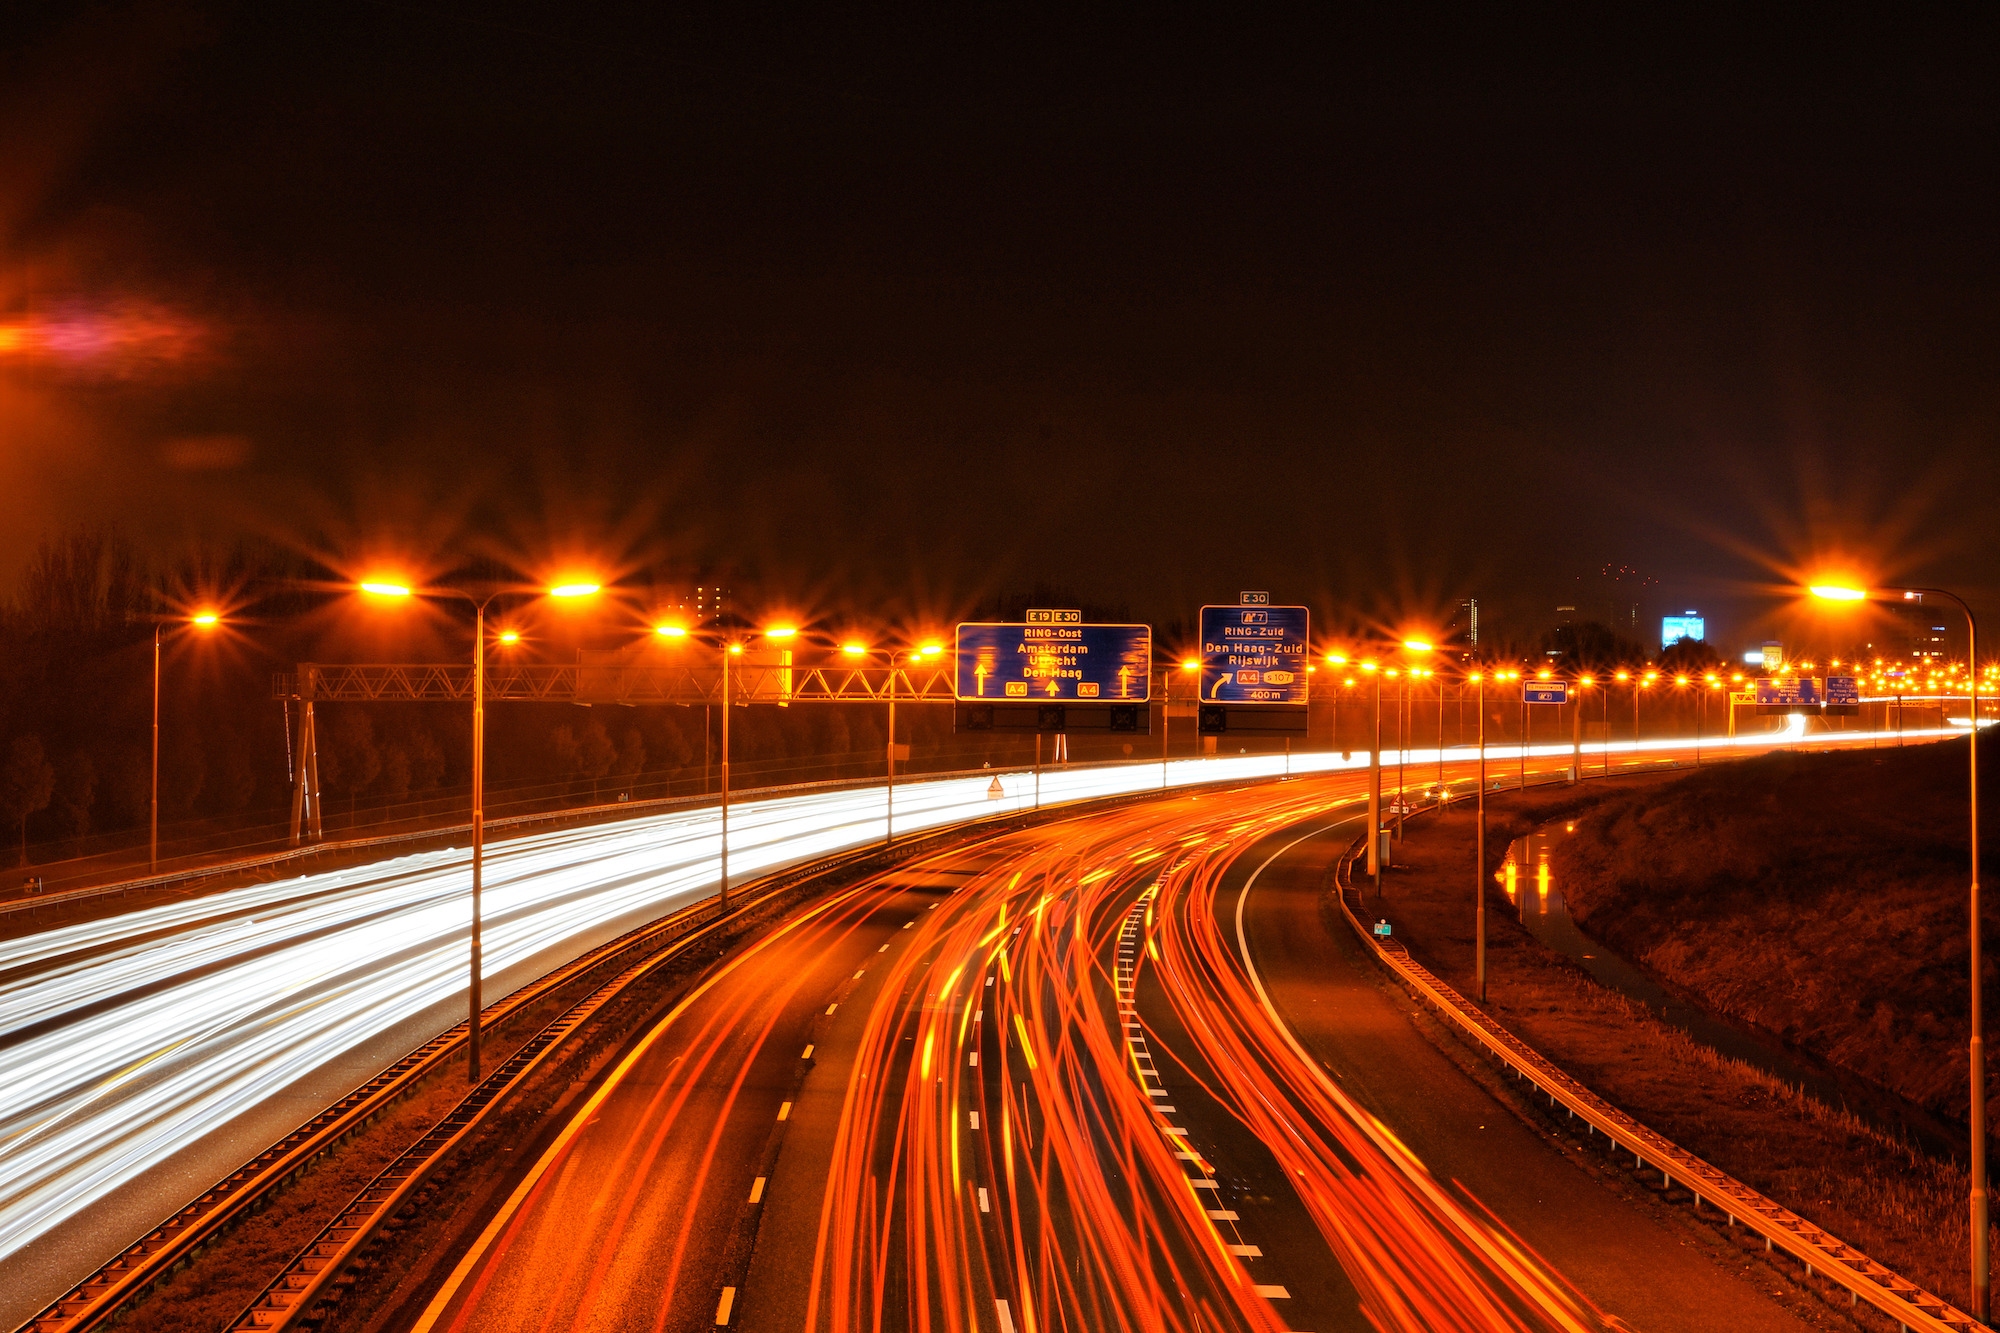 If you stand above a freeway, the cars appear to move quickly relative to you. If you are driving on the freeway, the other cars move slowly relative to you, because your speed is near their speed.   Edwin van Buuringen  /Flickr  (CC BY 2.0)